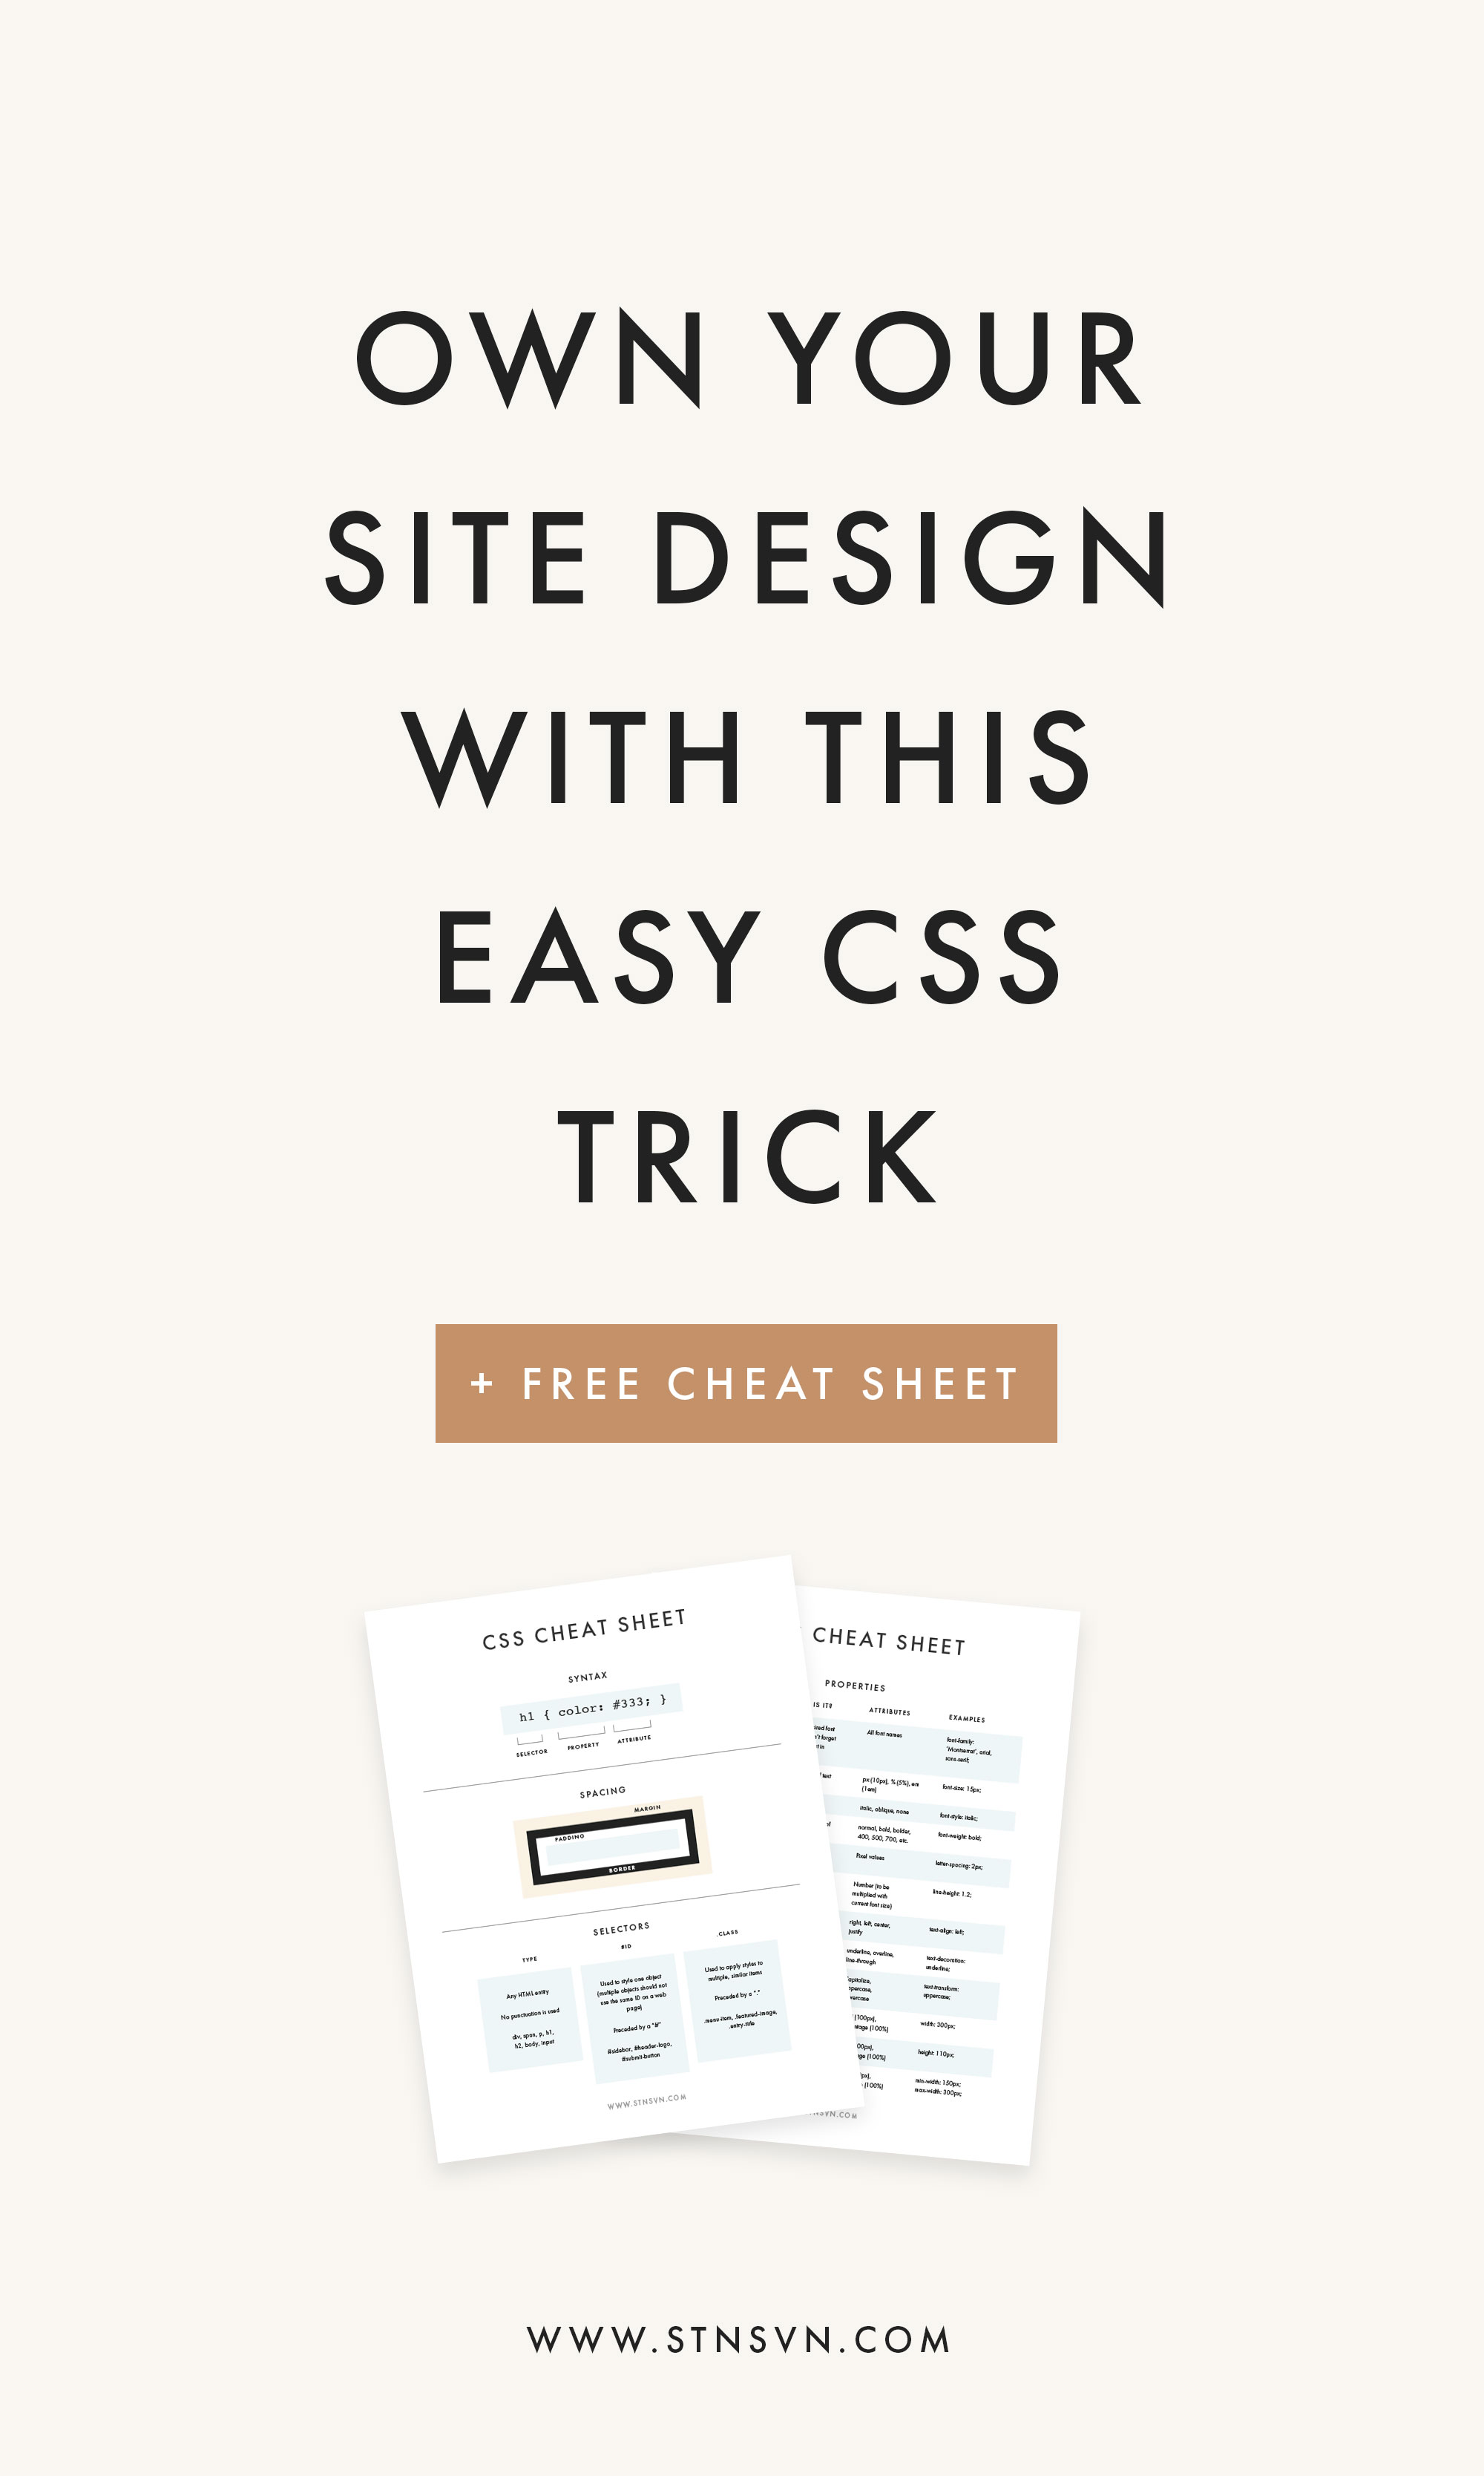 How to Own Your Site Design With This Easy CSS Trick.jpg